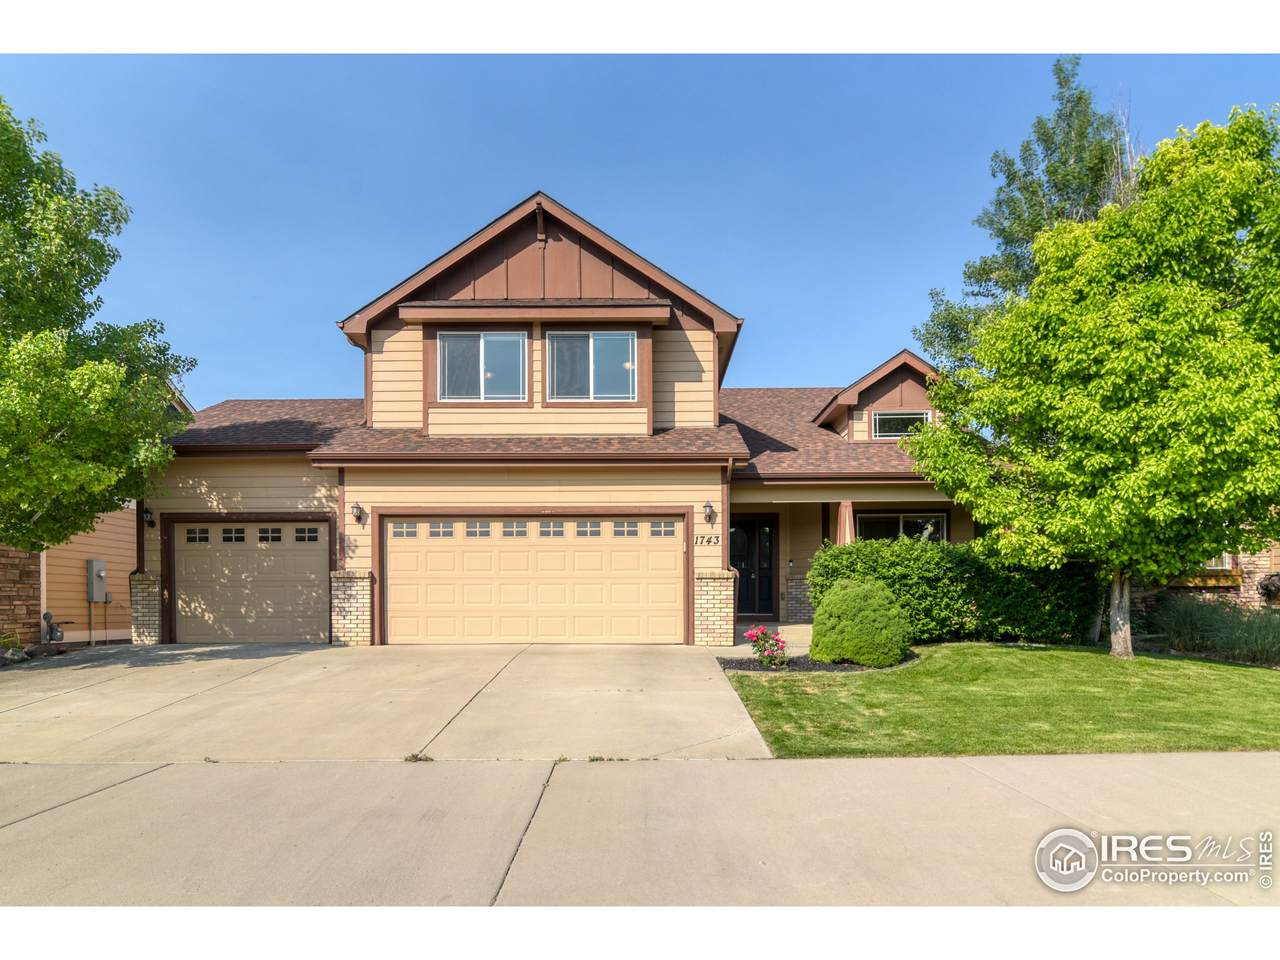 1743 Green River Dr - Photo 1